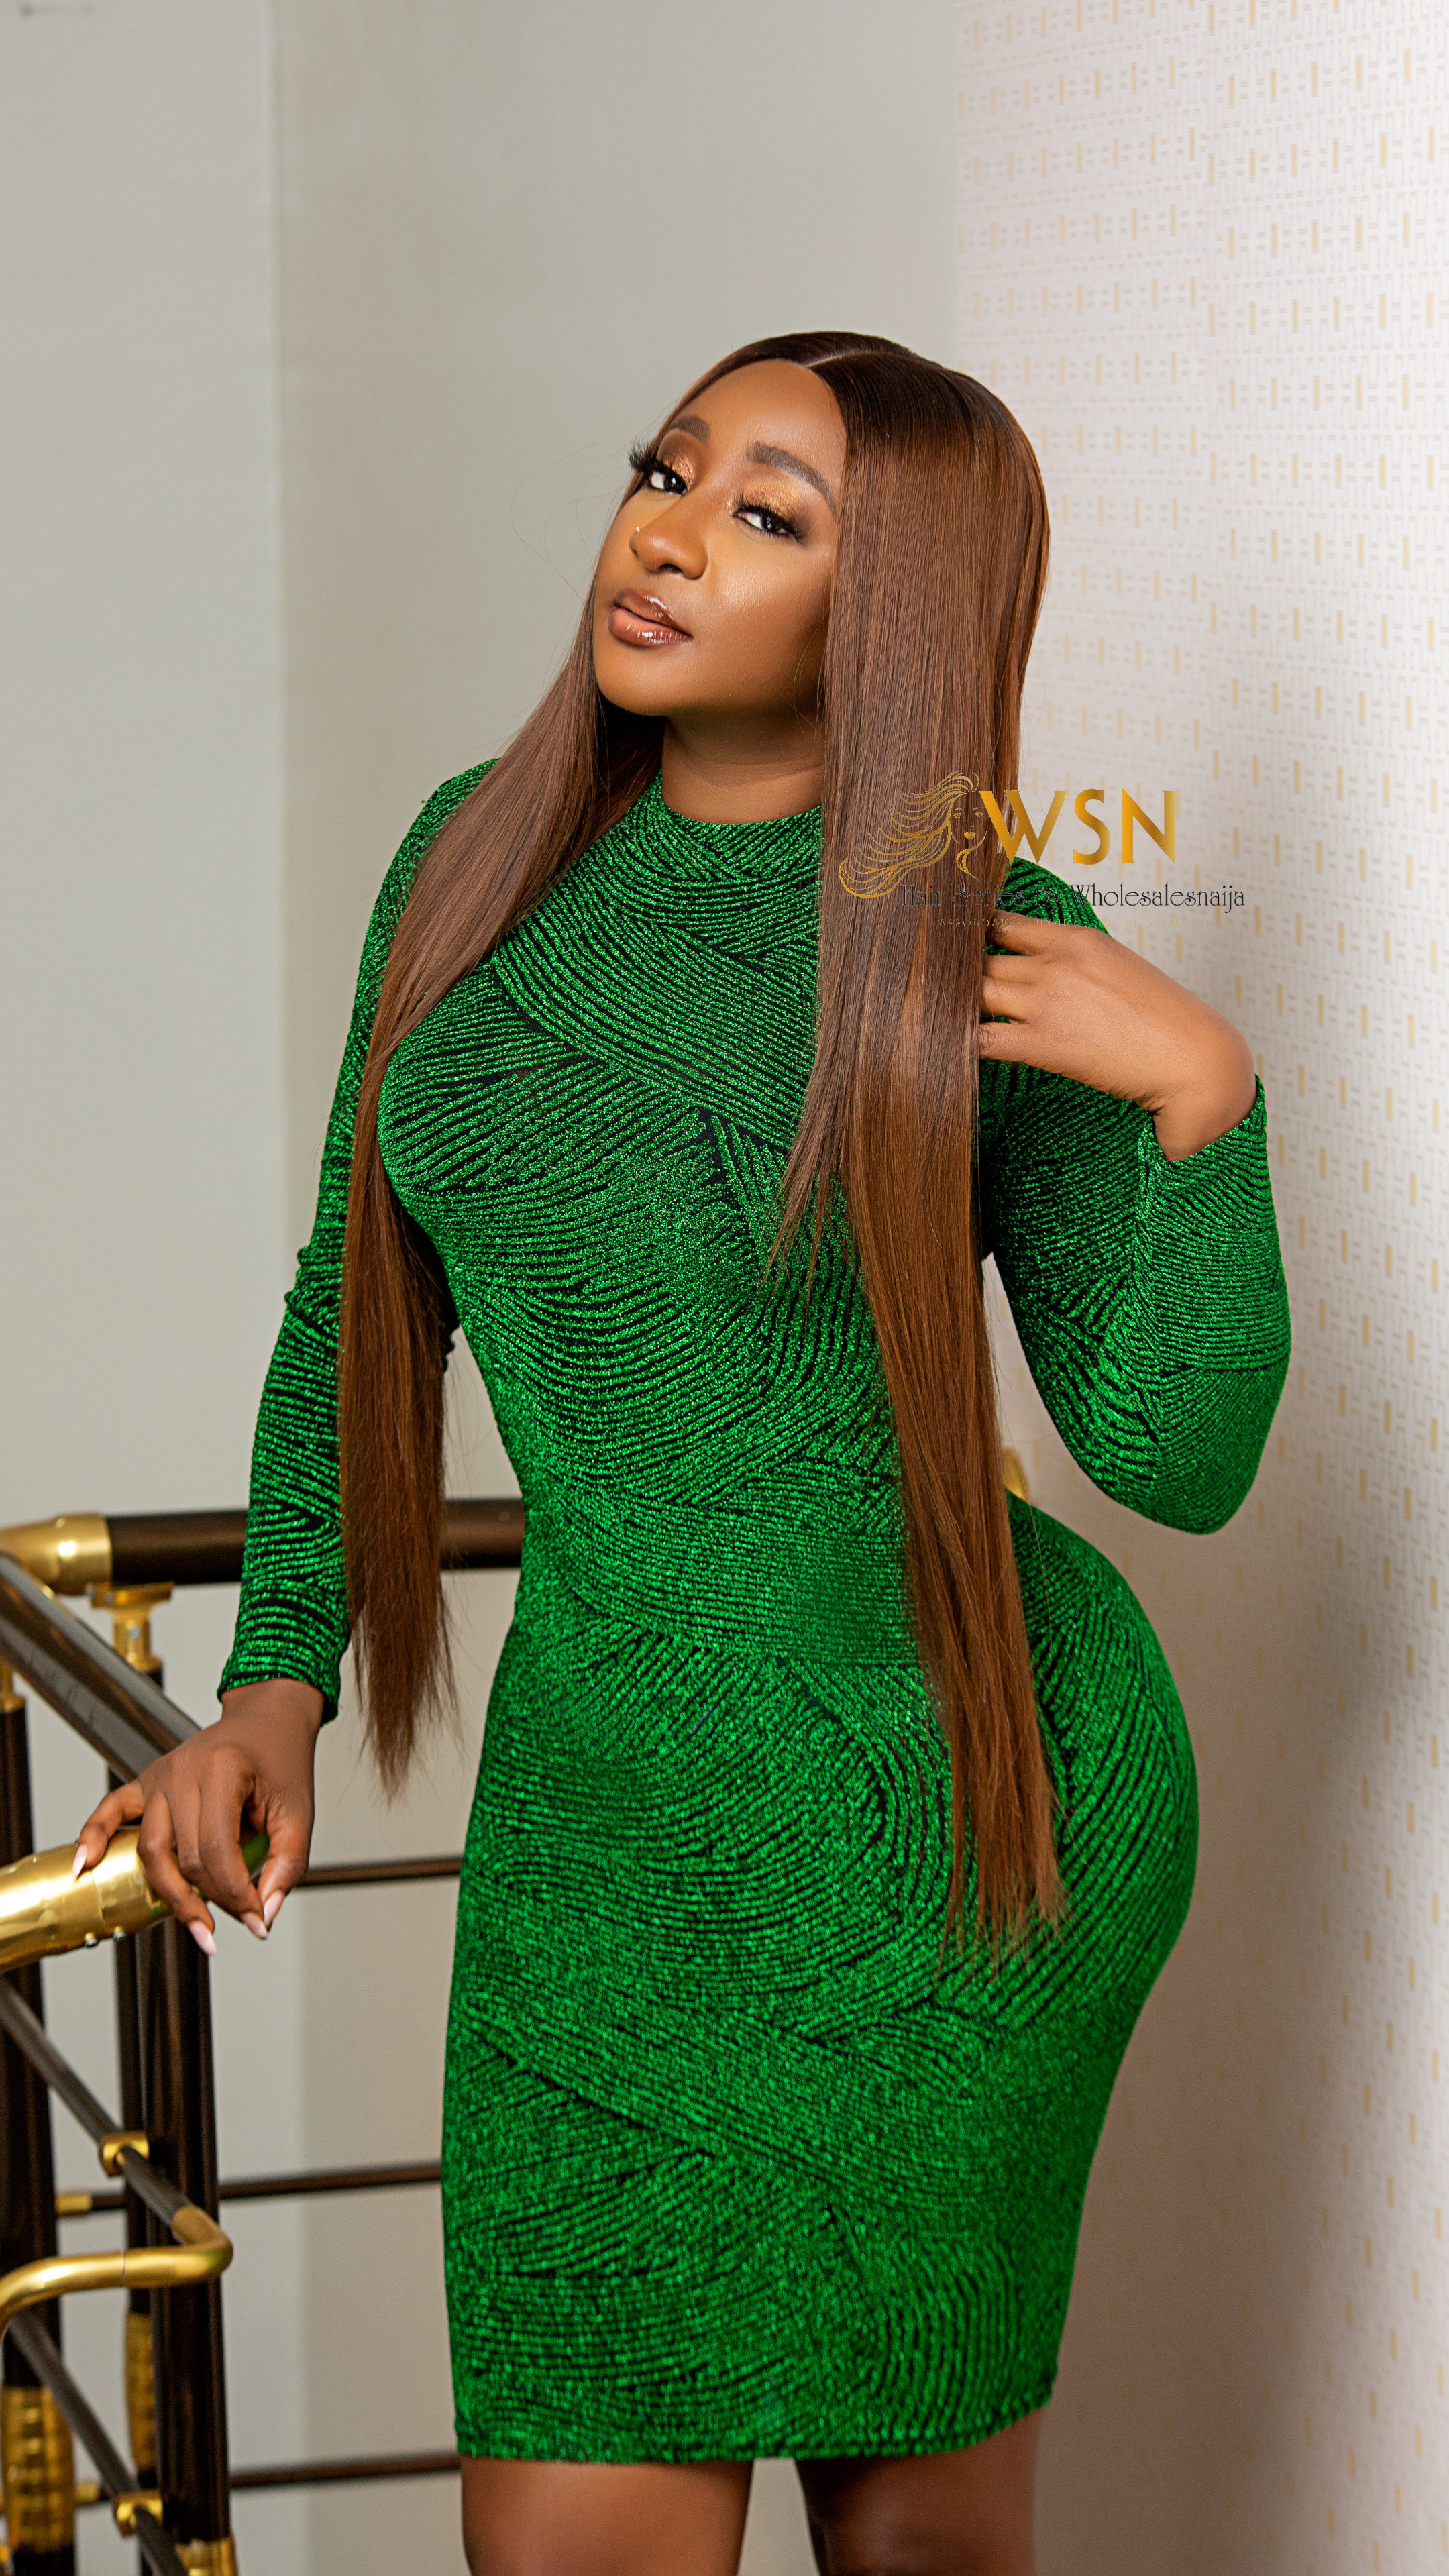 Wholesalesnaija Hair Brand Ambassadors Rocking Different Weaves and Wigs  Pieces from The Brand (photographs)